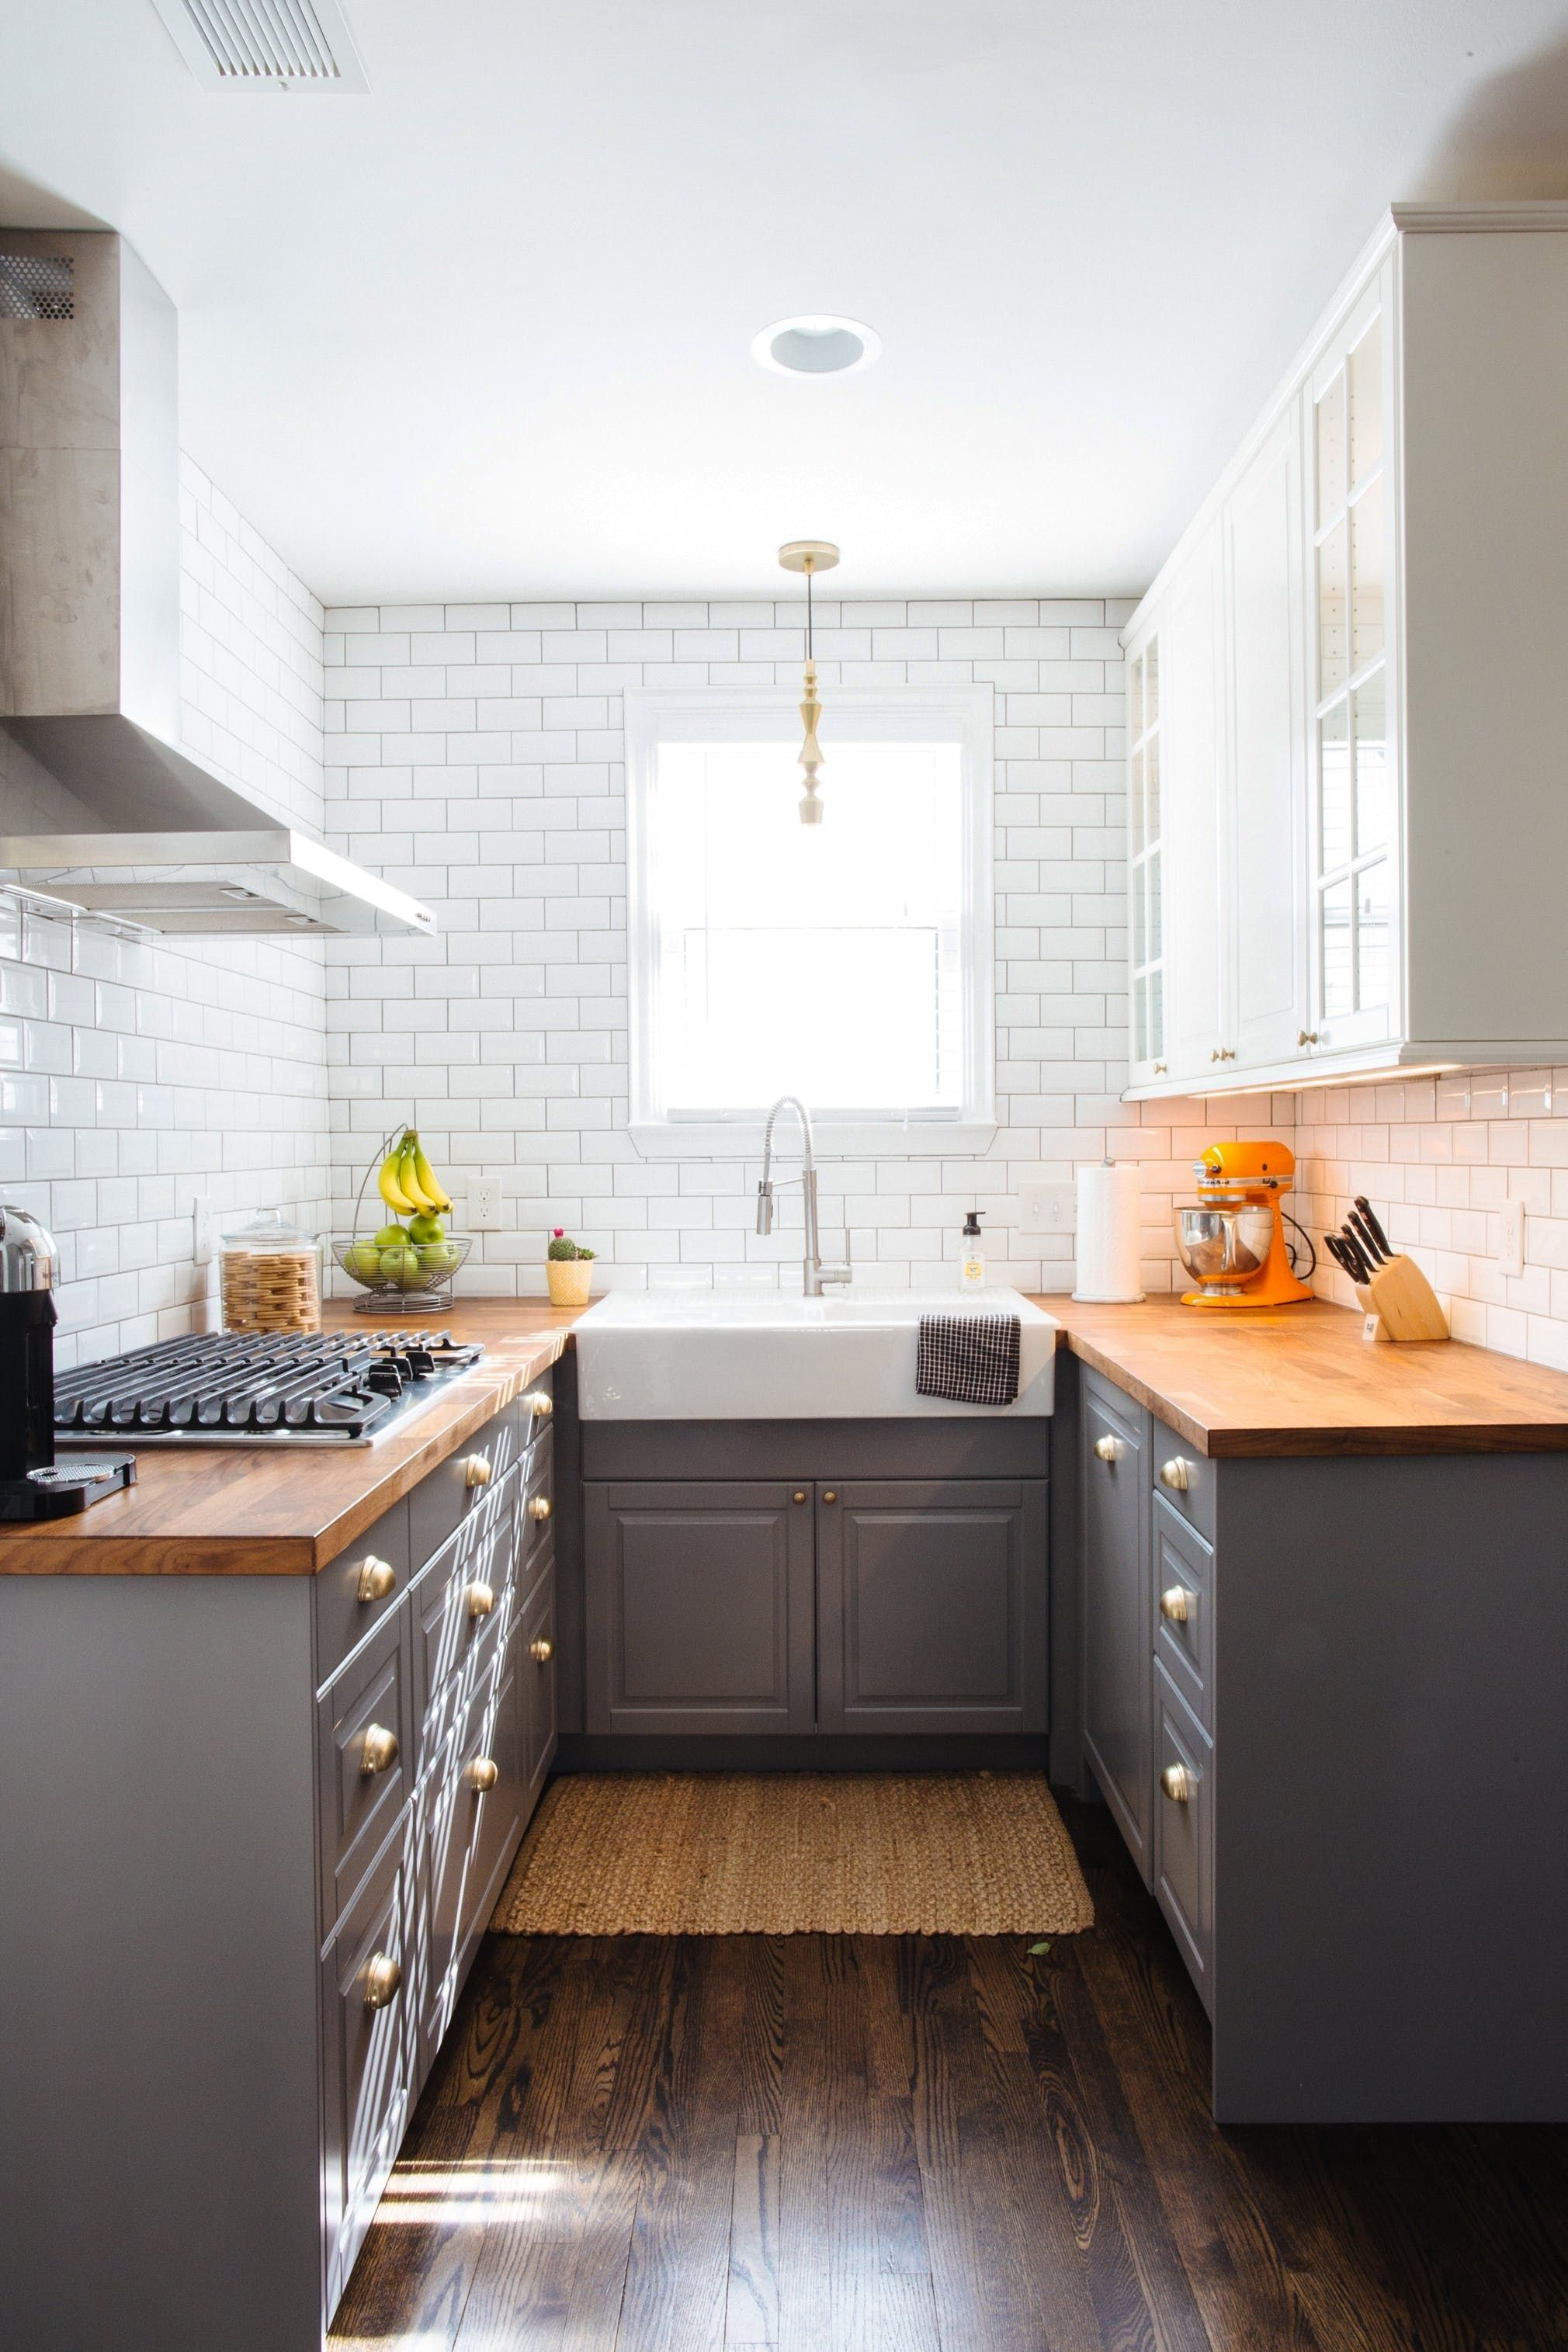 House Tour: A Clean & Classic 1920s Michigan Home   Small kitchens ...